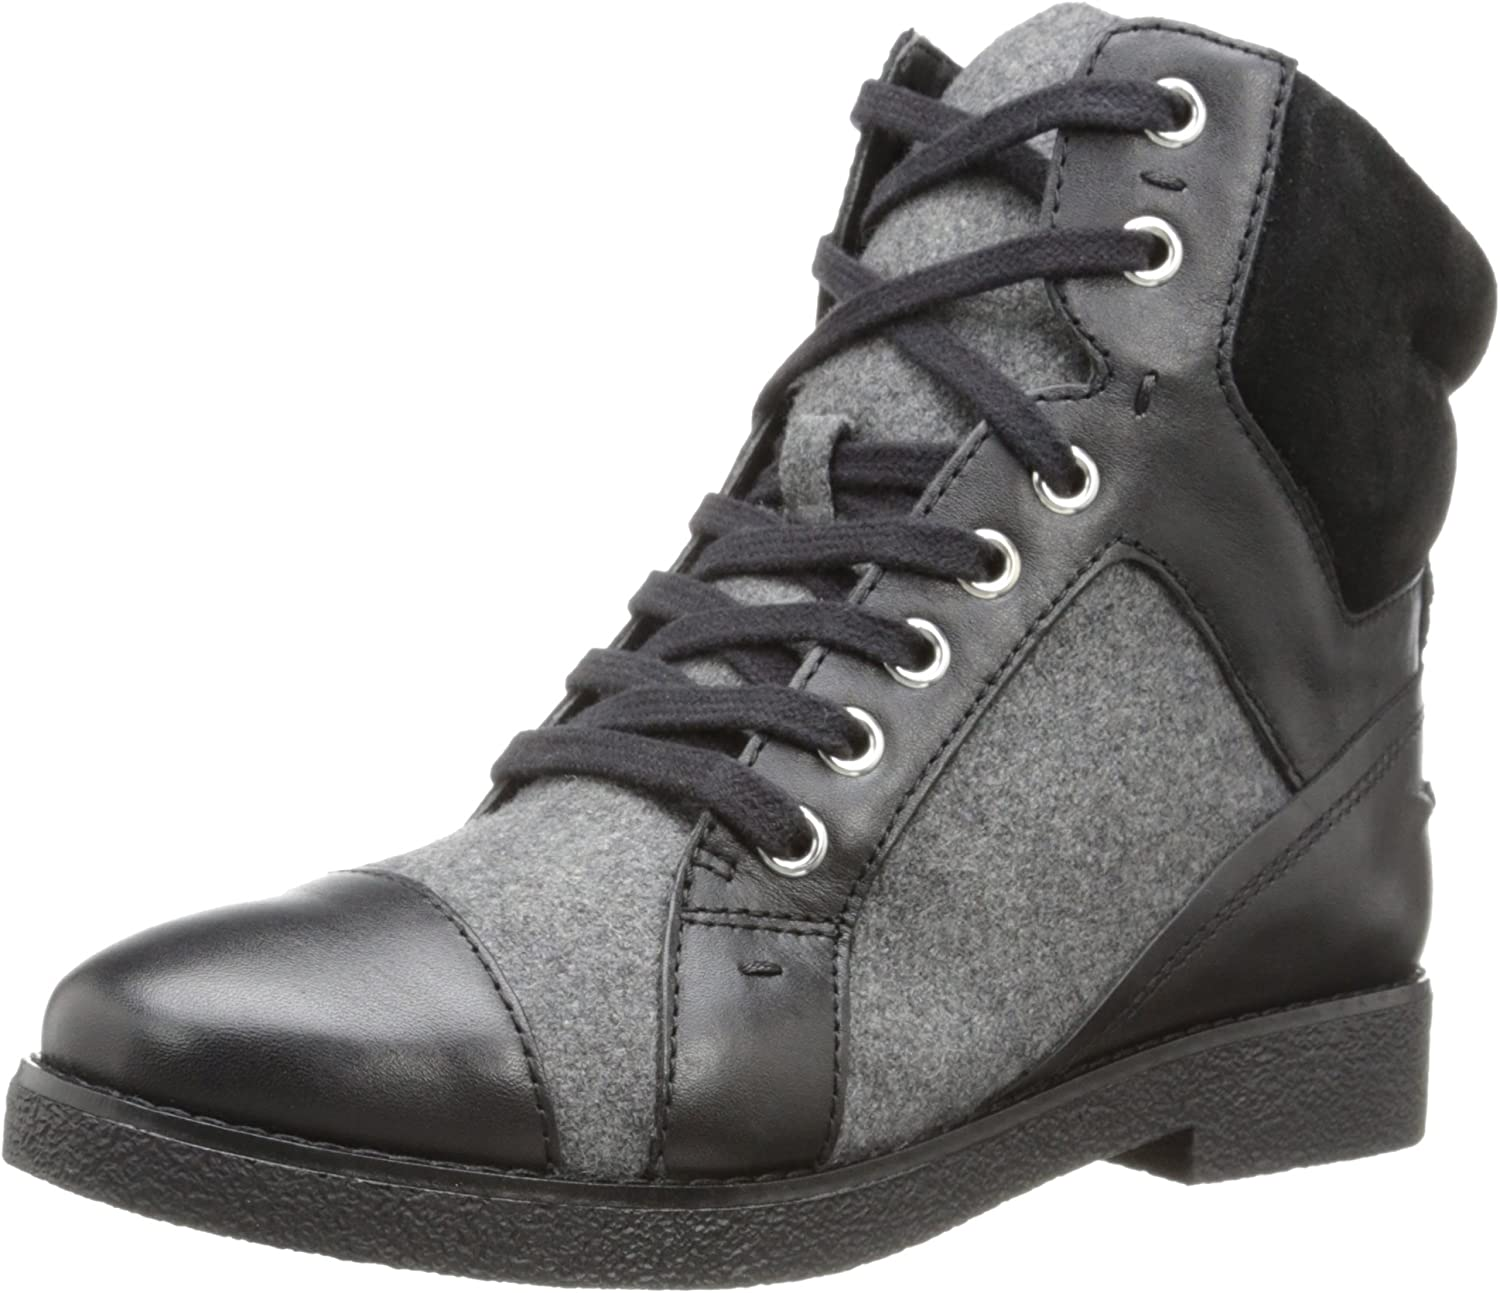 French Connection Women's Vance Fashion Sneaker